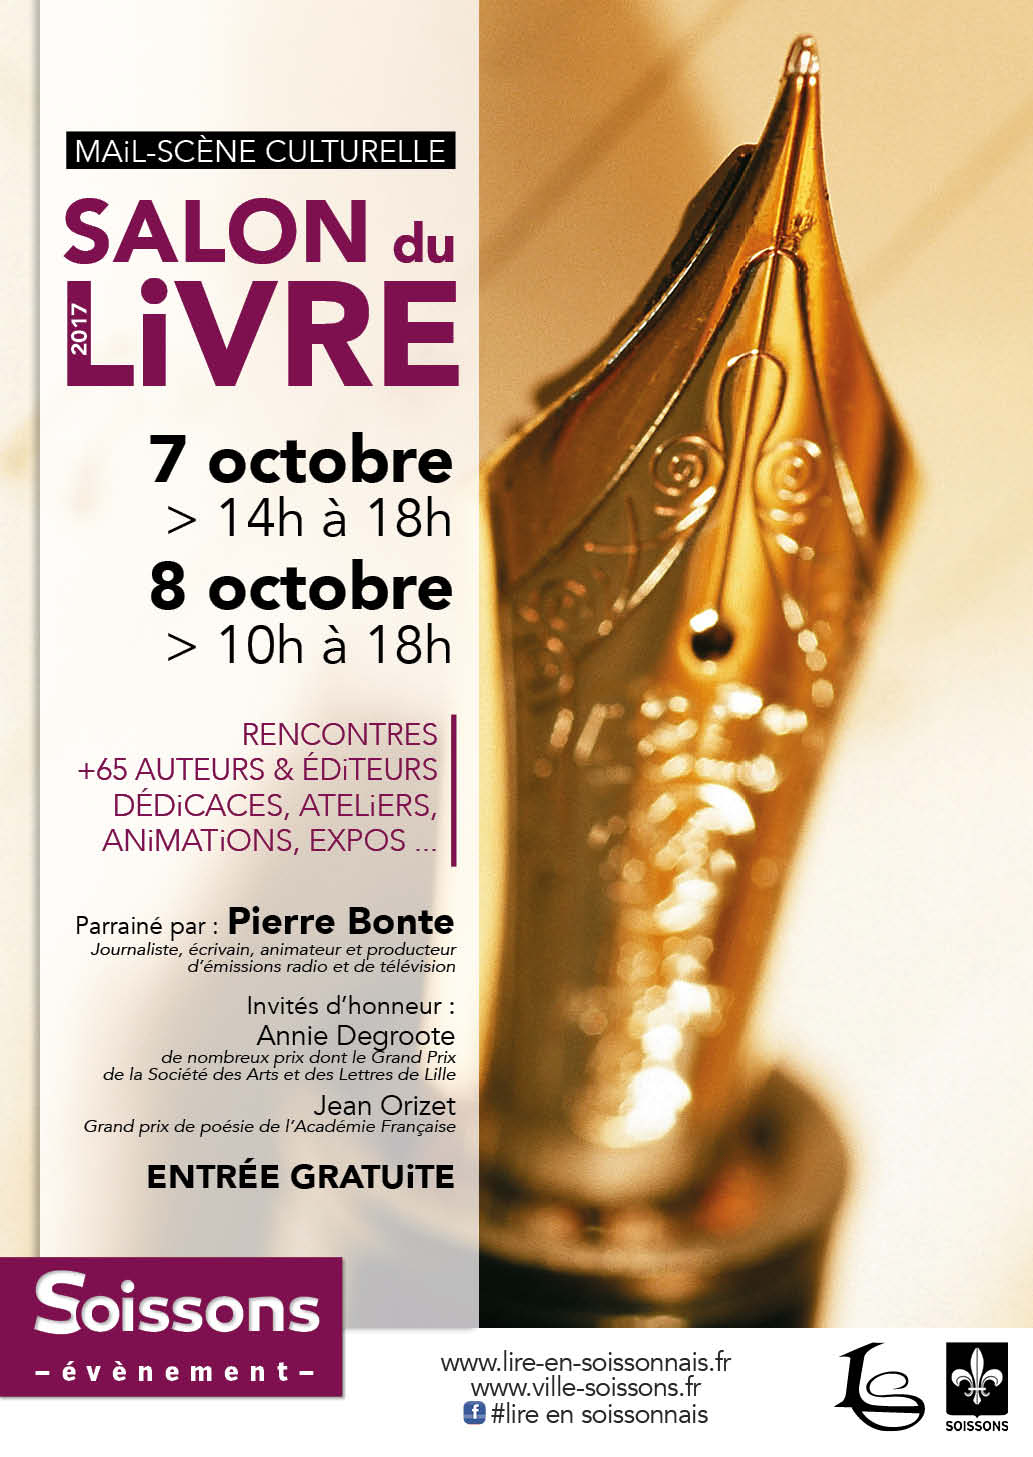 Salon du livre 2017 on y arrive lire en soissonnais - Salon du livre nantes ...